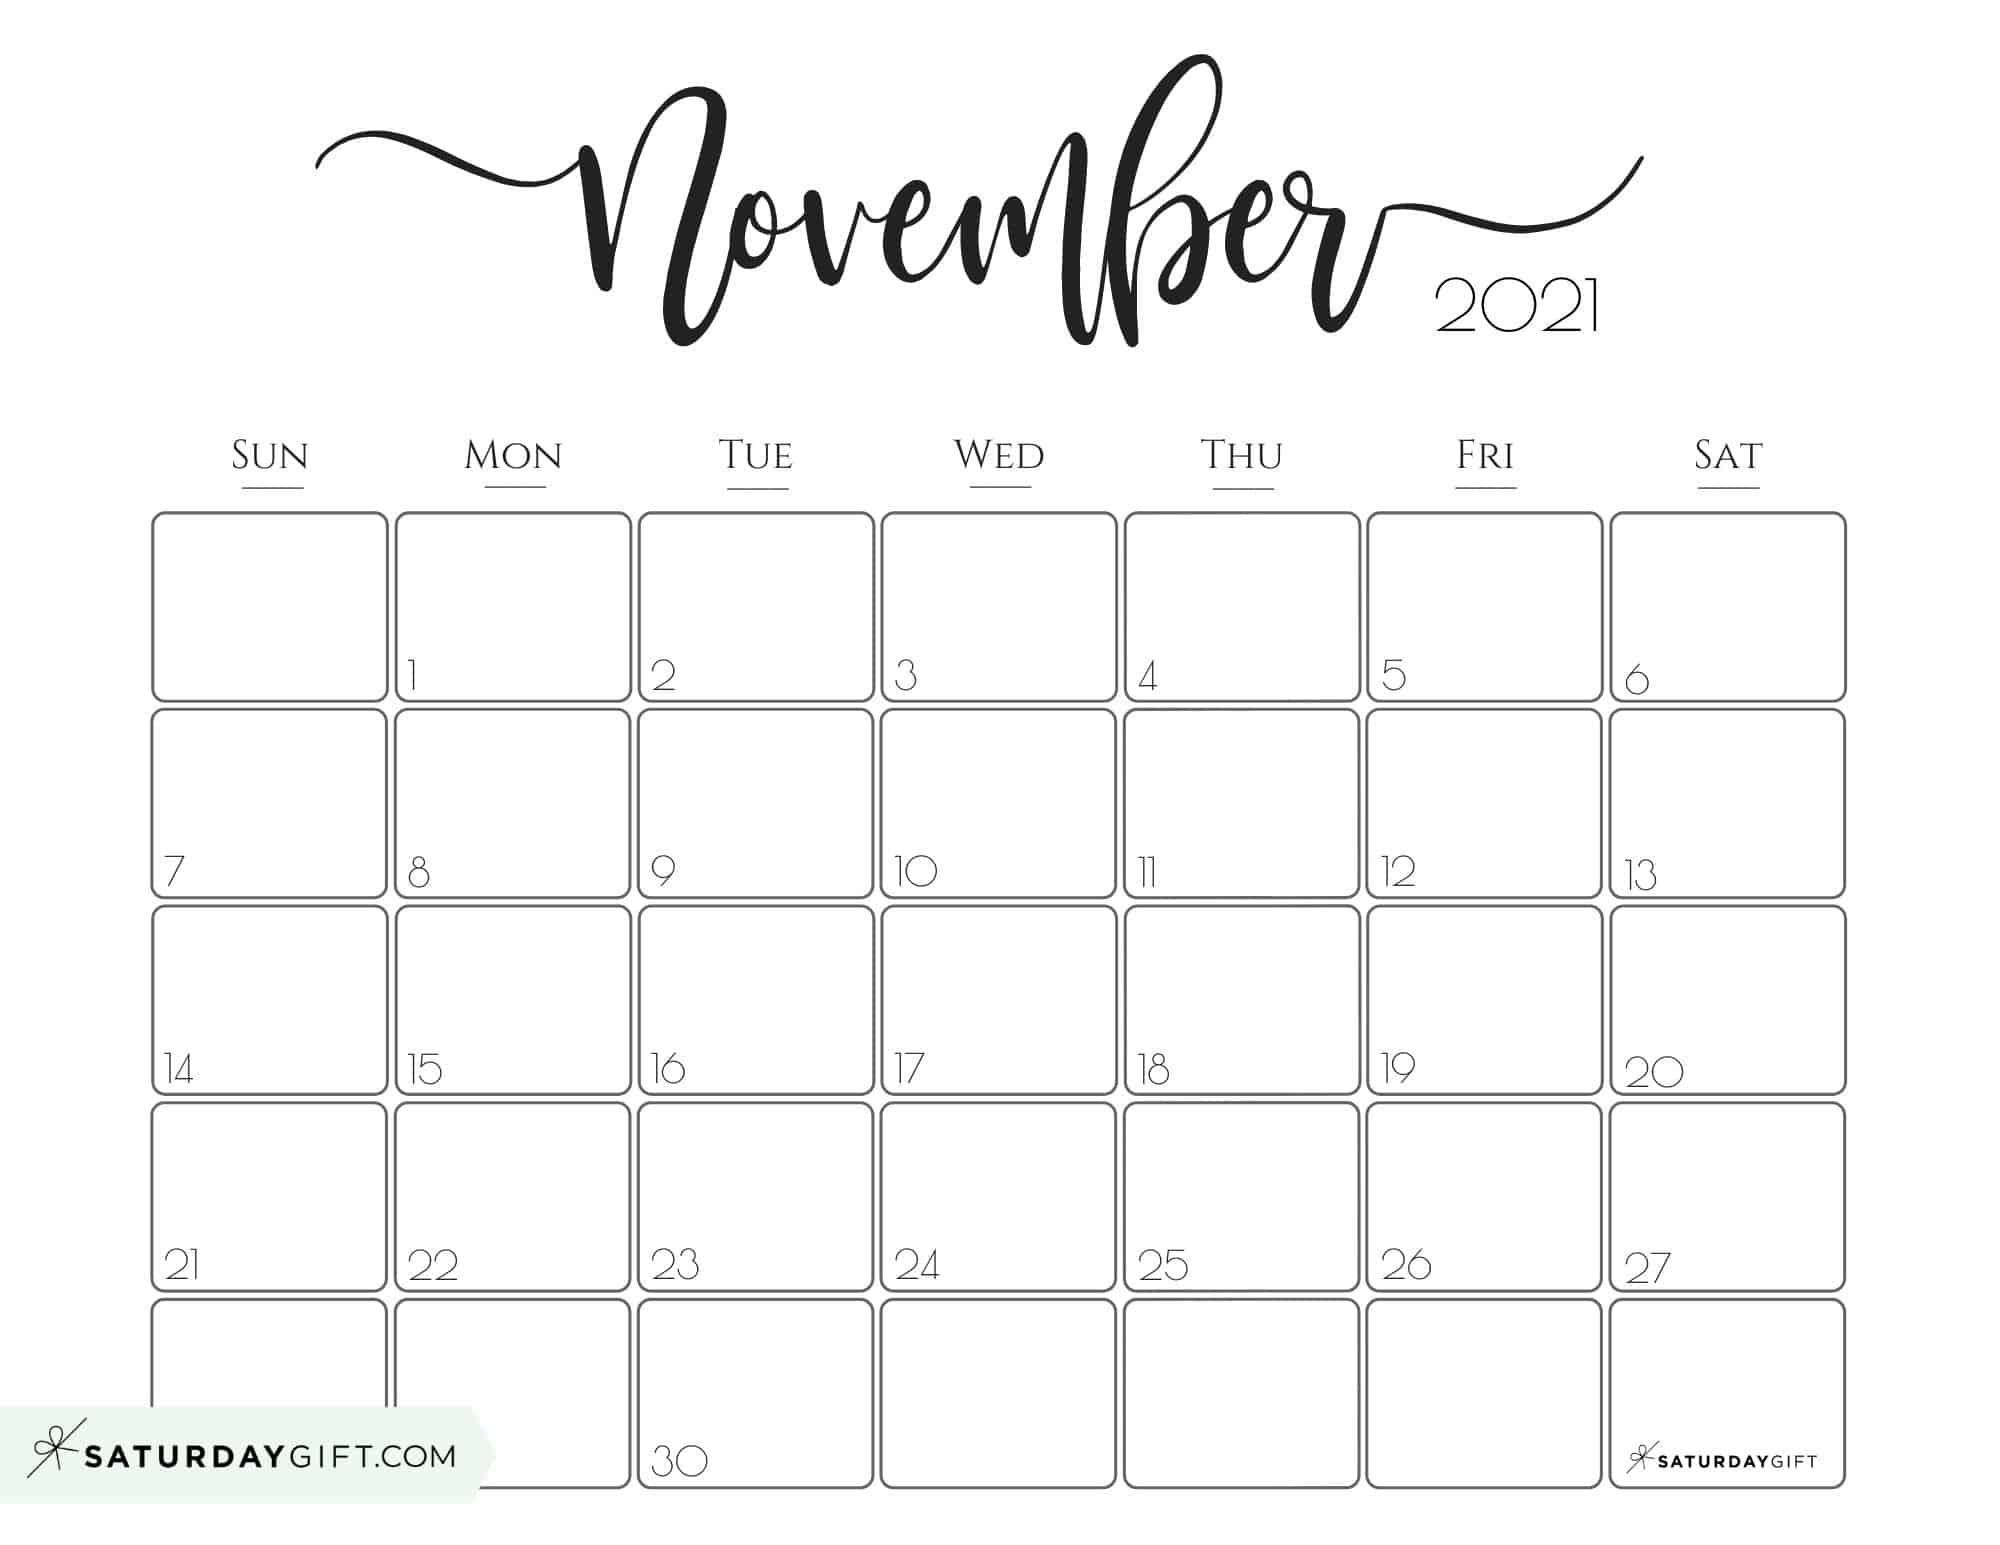 Calendar For Nov 2021 Elegant 2021 Calendar by SaturdayGift   Pretty Printable Monthly